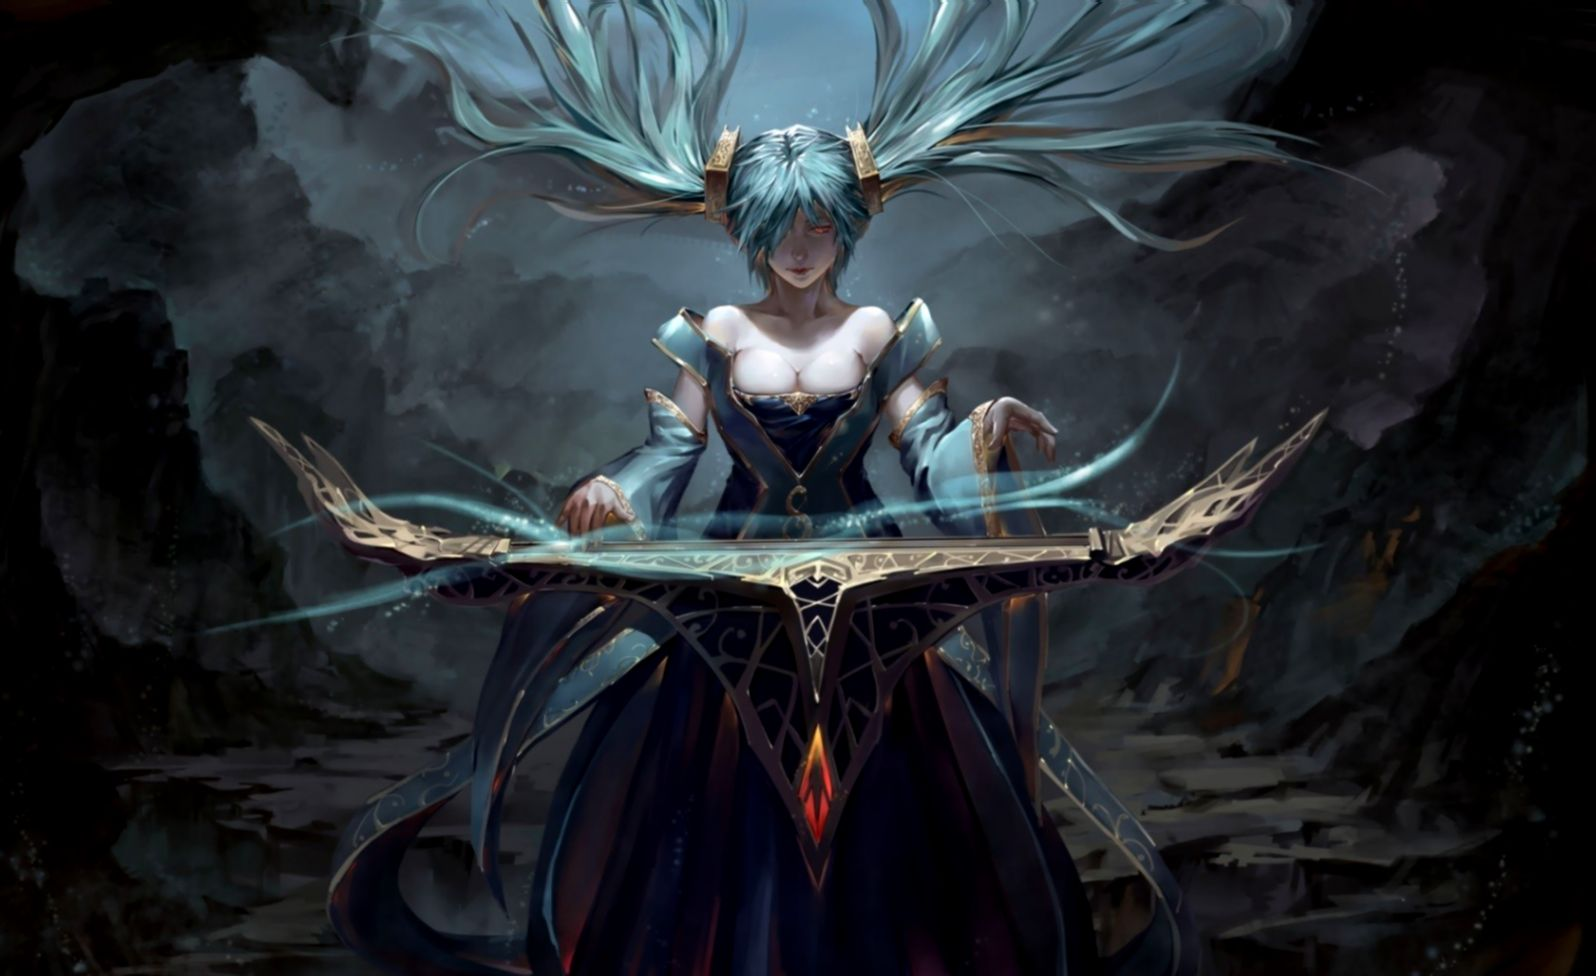 League Of Legends Sona Anime Custom Wallpaper Wallpapers 1080p